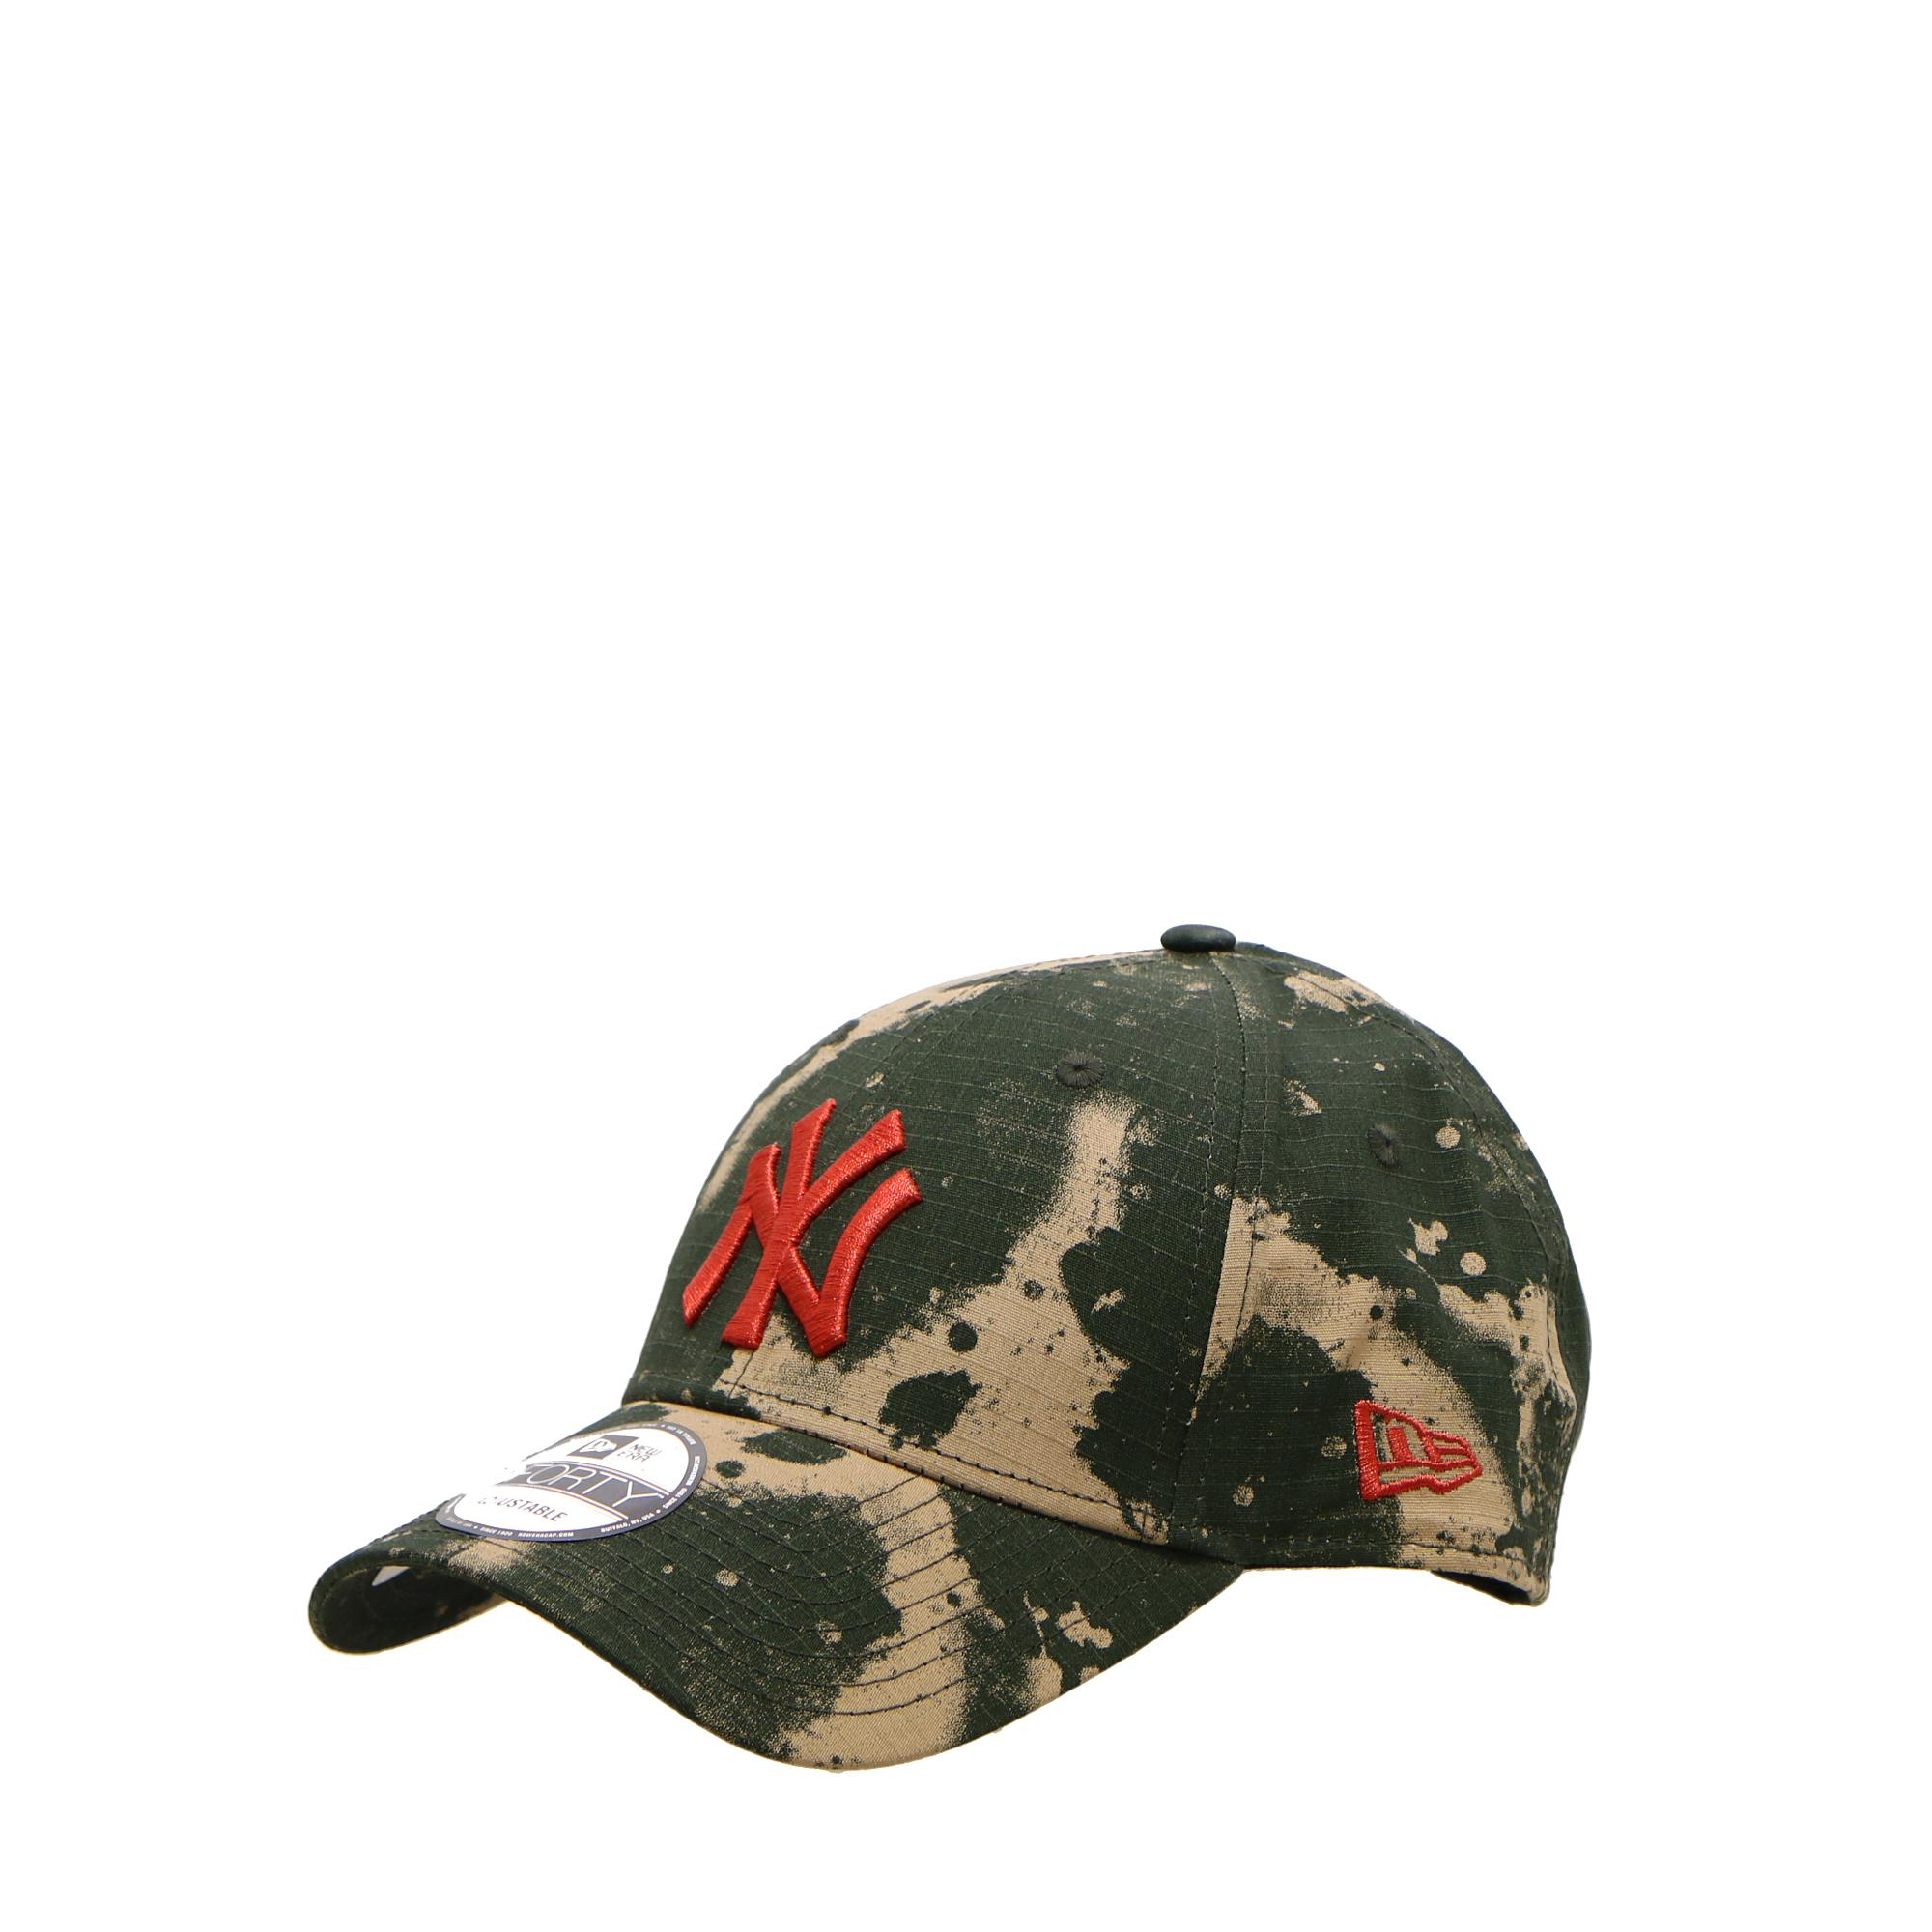 New Era 940 Ne Blurr Camo Ny Yankees Camo fiery red